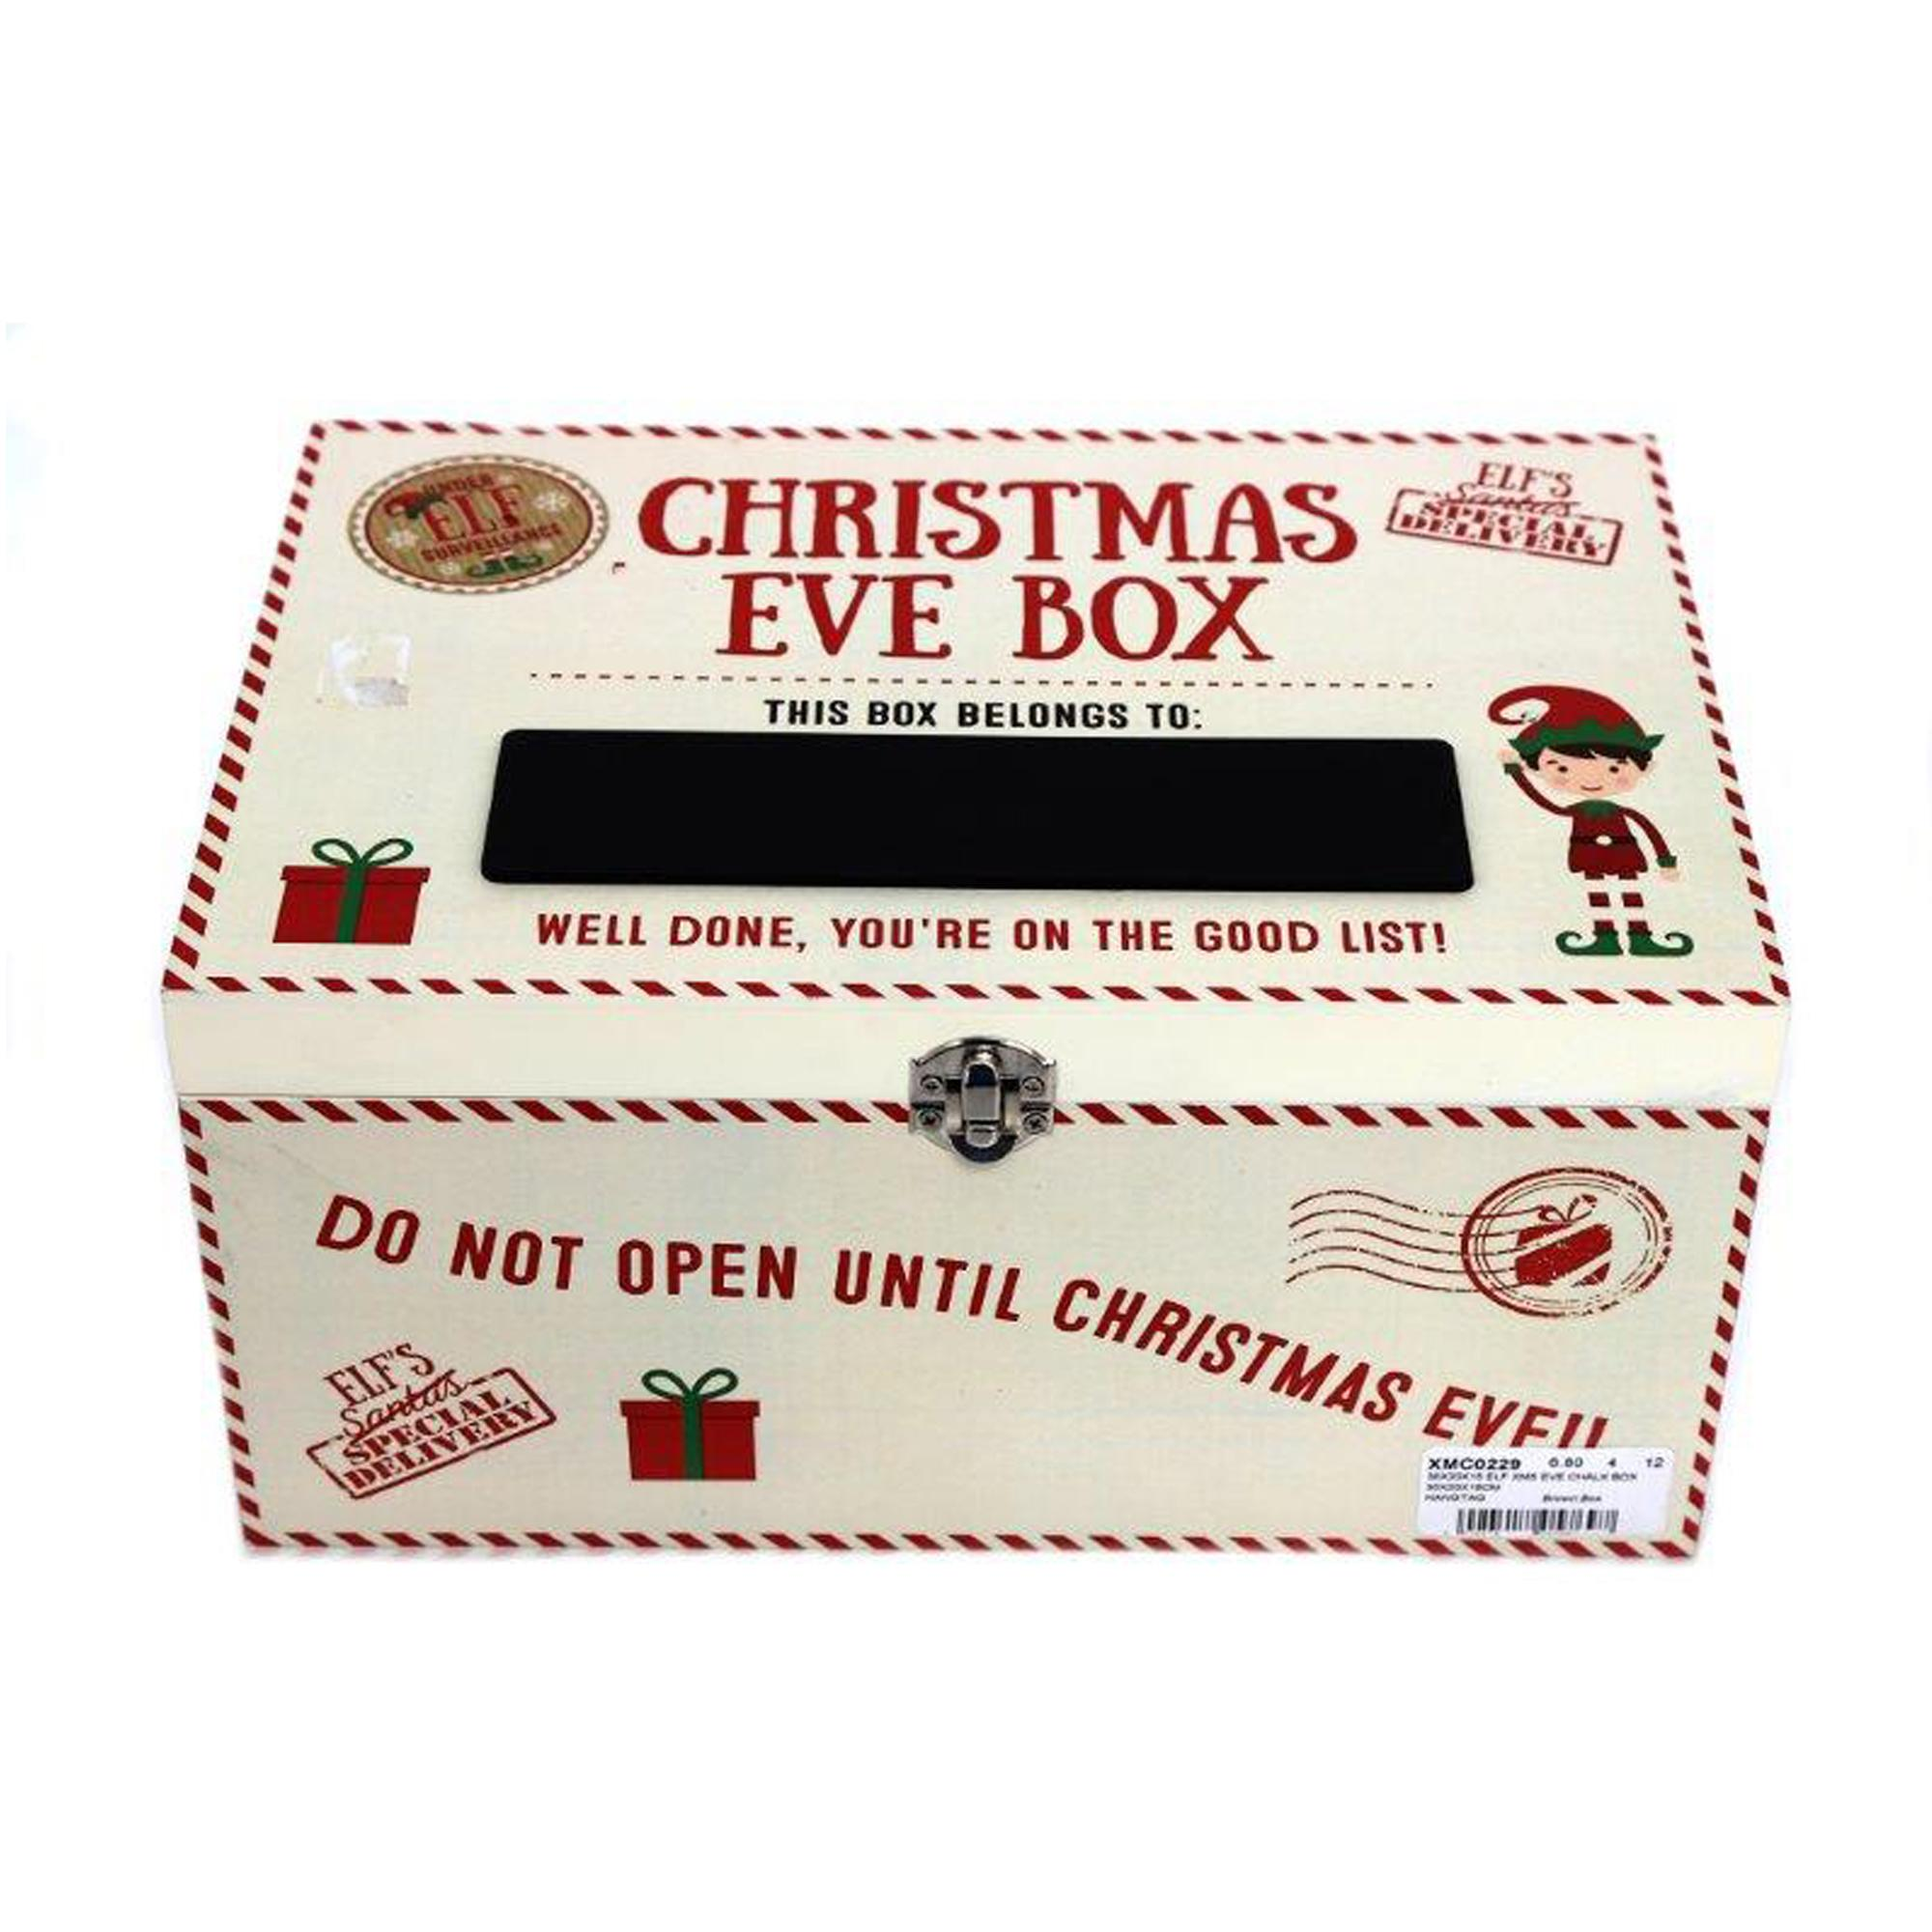 White Christmas Eve Chalk Box | Cancer Research UK Online Shop